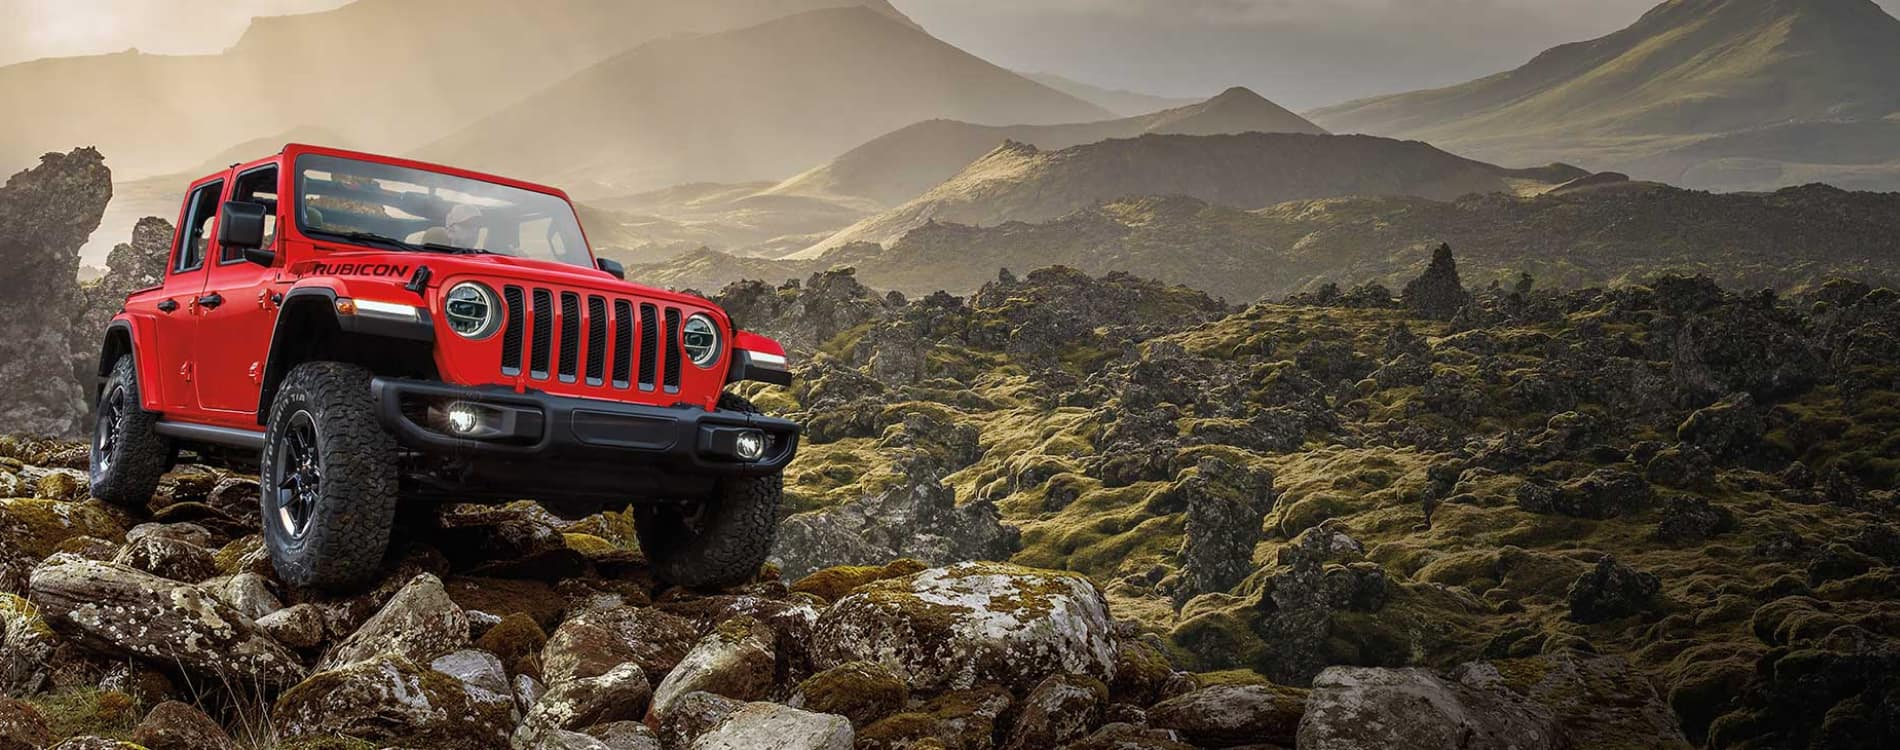 The 2019 Jeep Wrangler JL available at Roesch CDJR